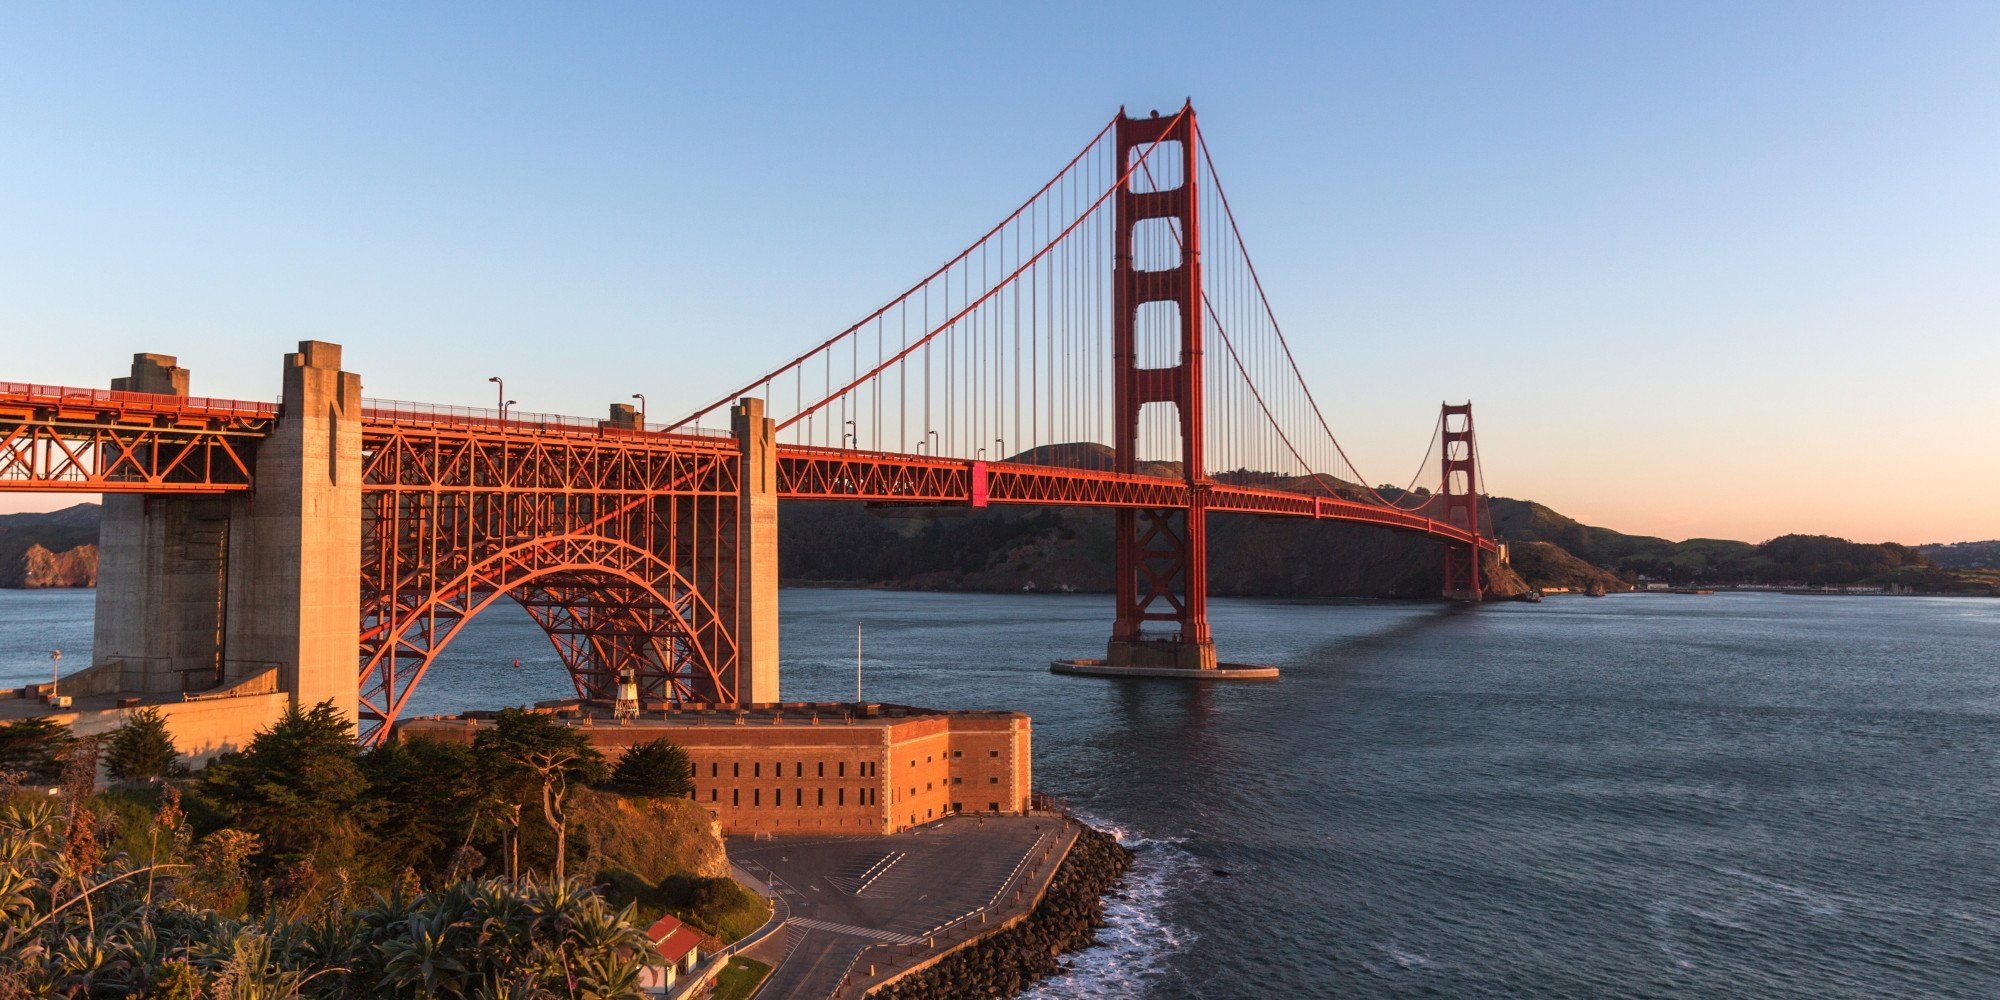 GATE Facebook: Why The Golden Gate Bridge Is An Engineering Marvel